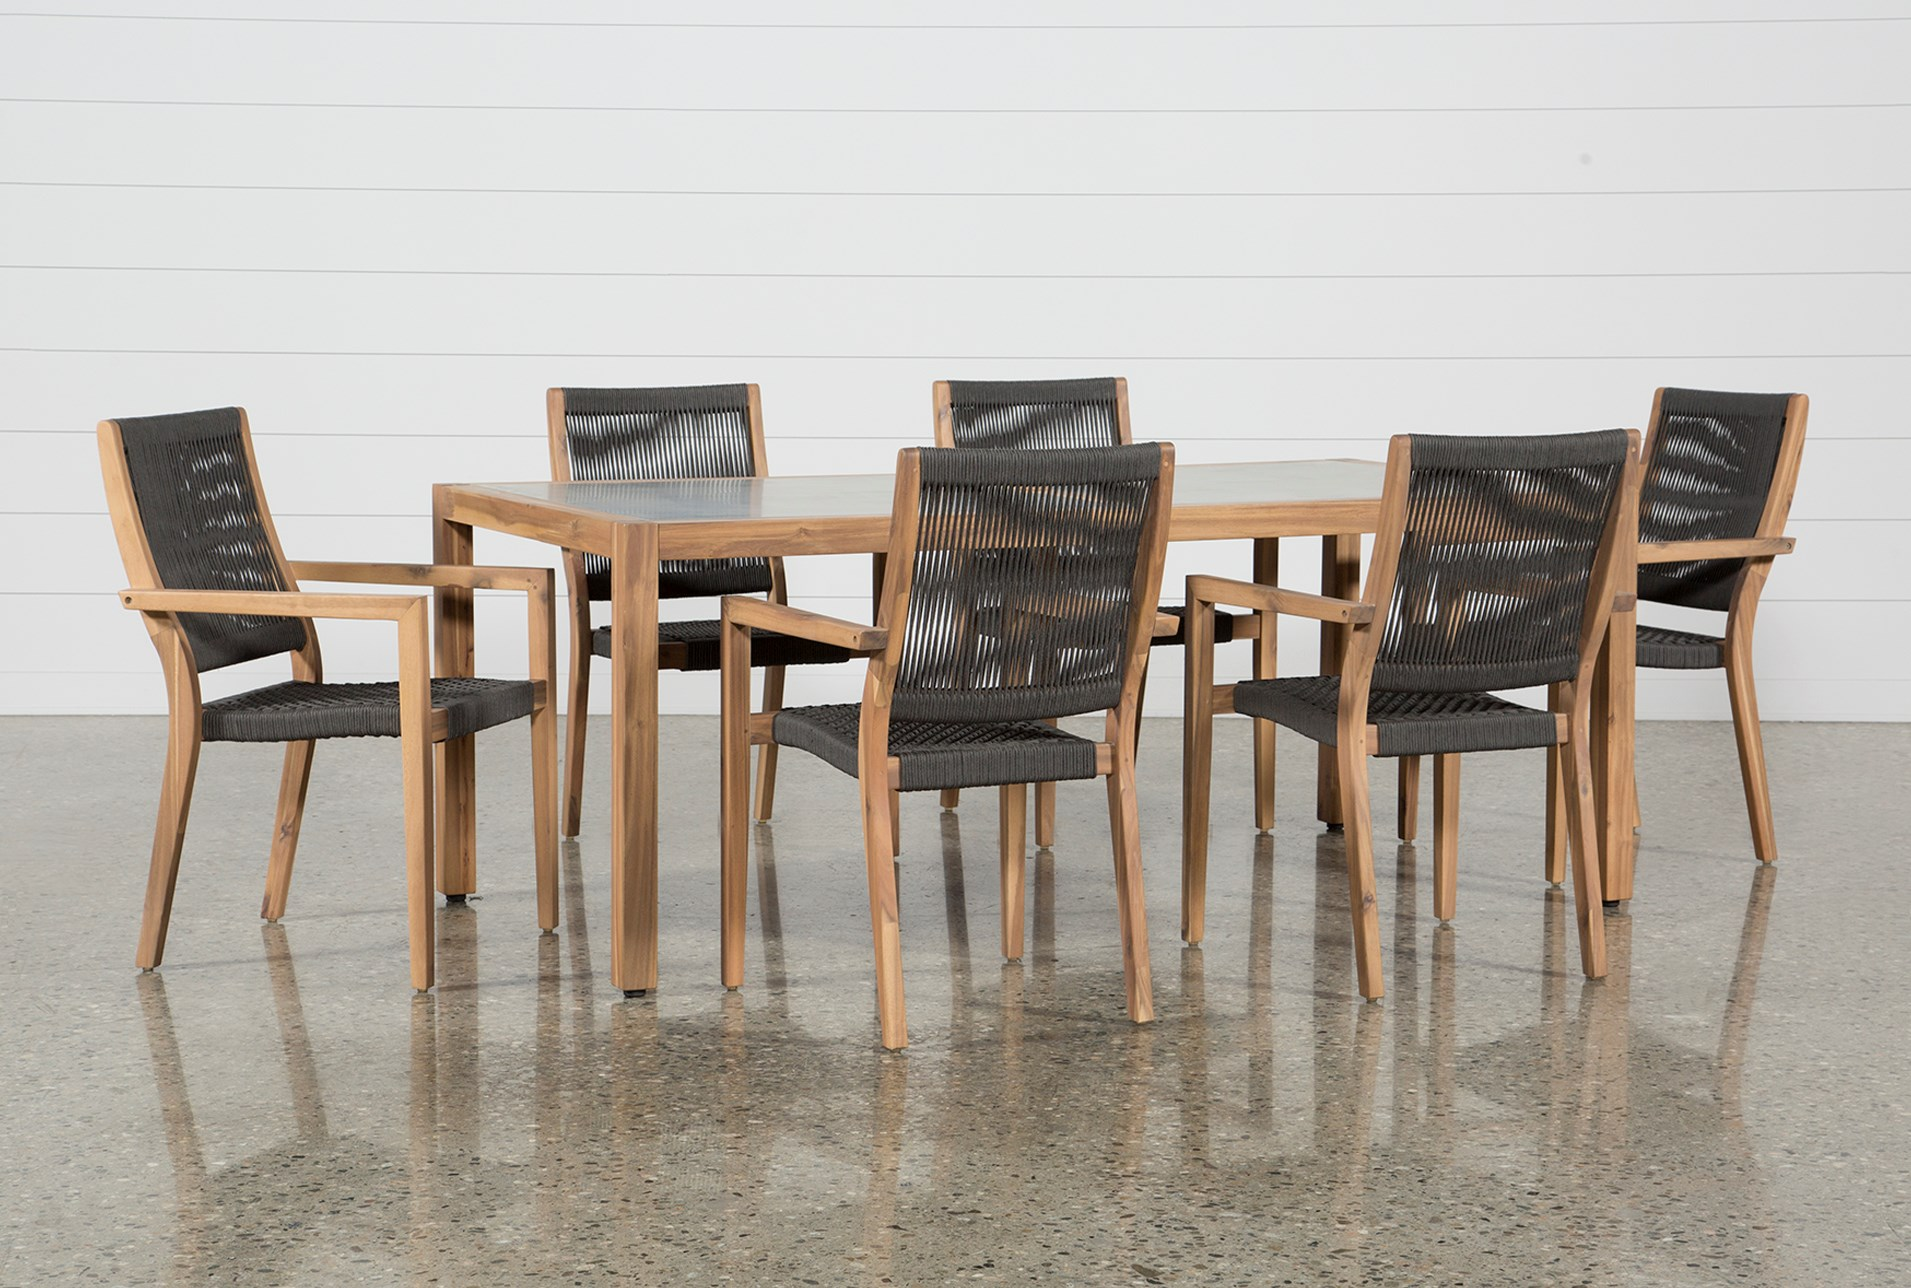 Outdoor Sienna Dining Table With 6 Arm Chairs Qty 1 Has Been Successfully Added To Your Cart